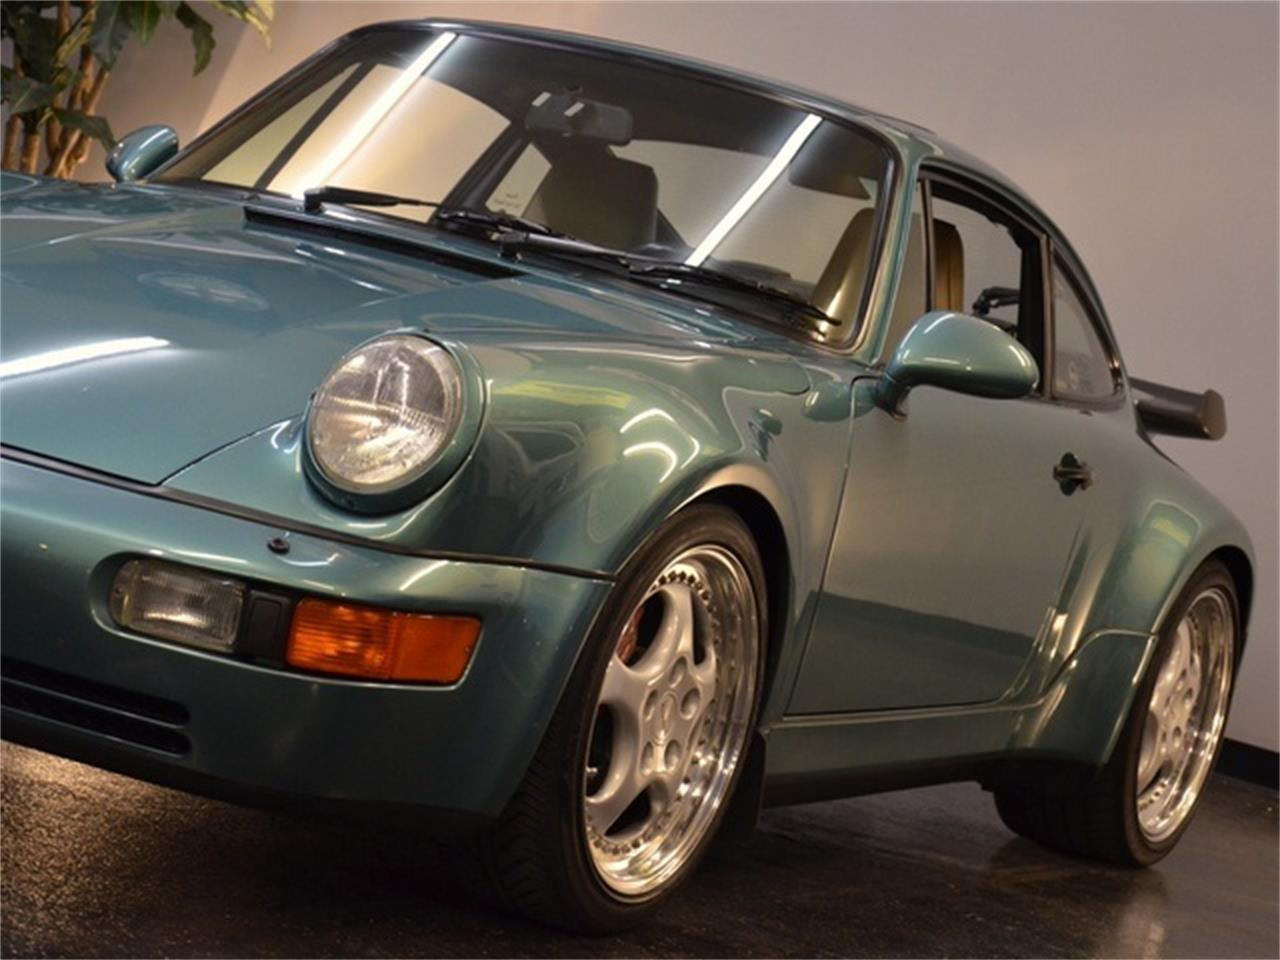 Large Picture of 1994 Porsche 911 Turbo located in Indiana Offered by Abreu Motors - FX1T